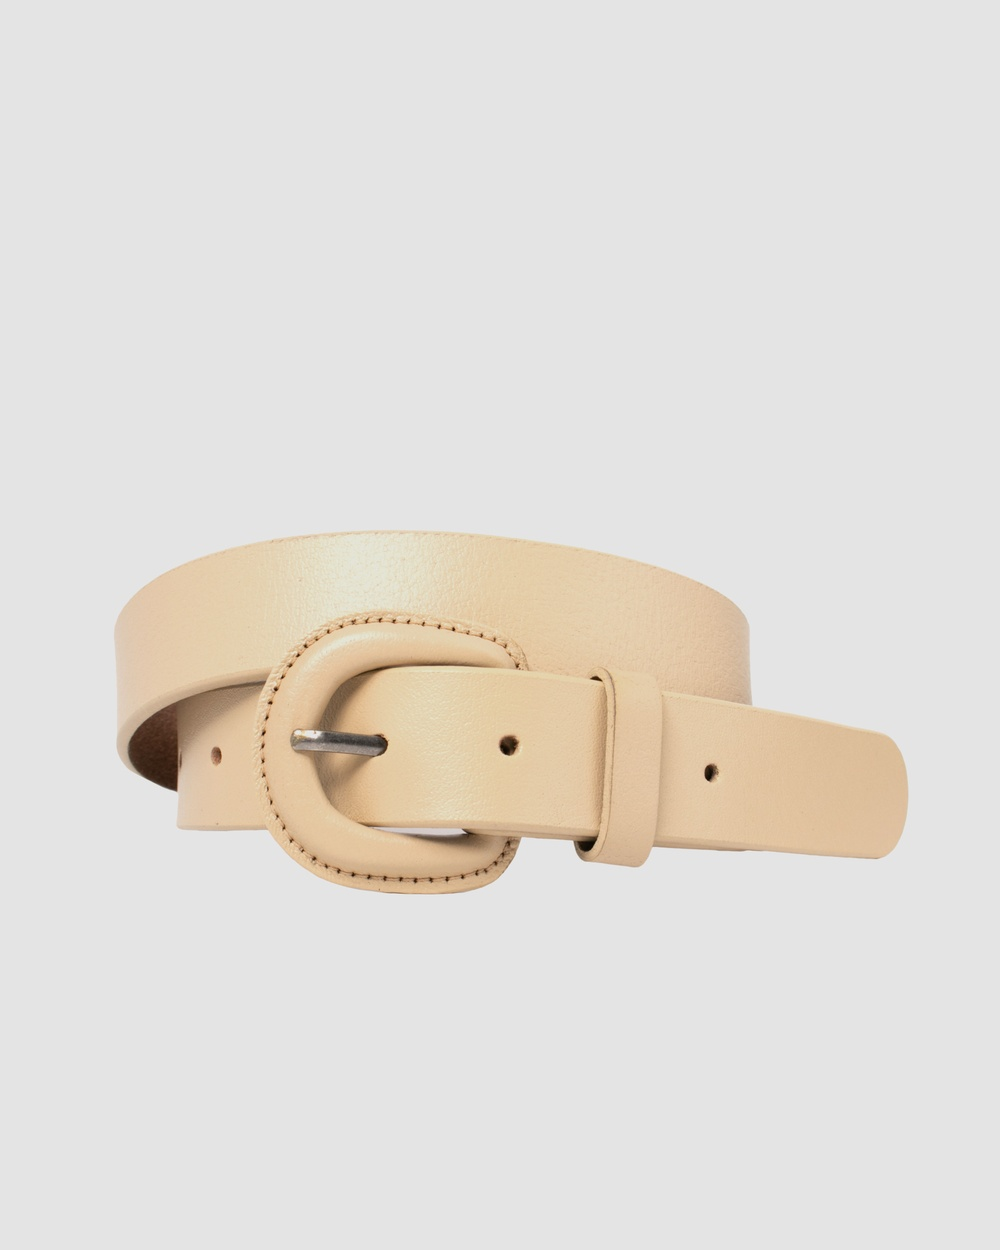 Loop Leather Co Kelly Belts Taupe